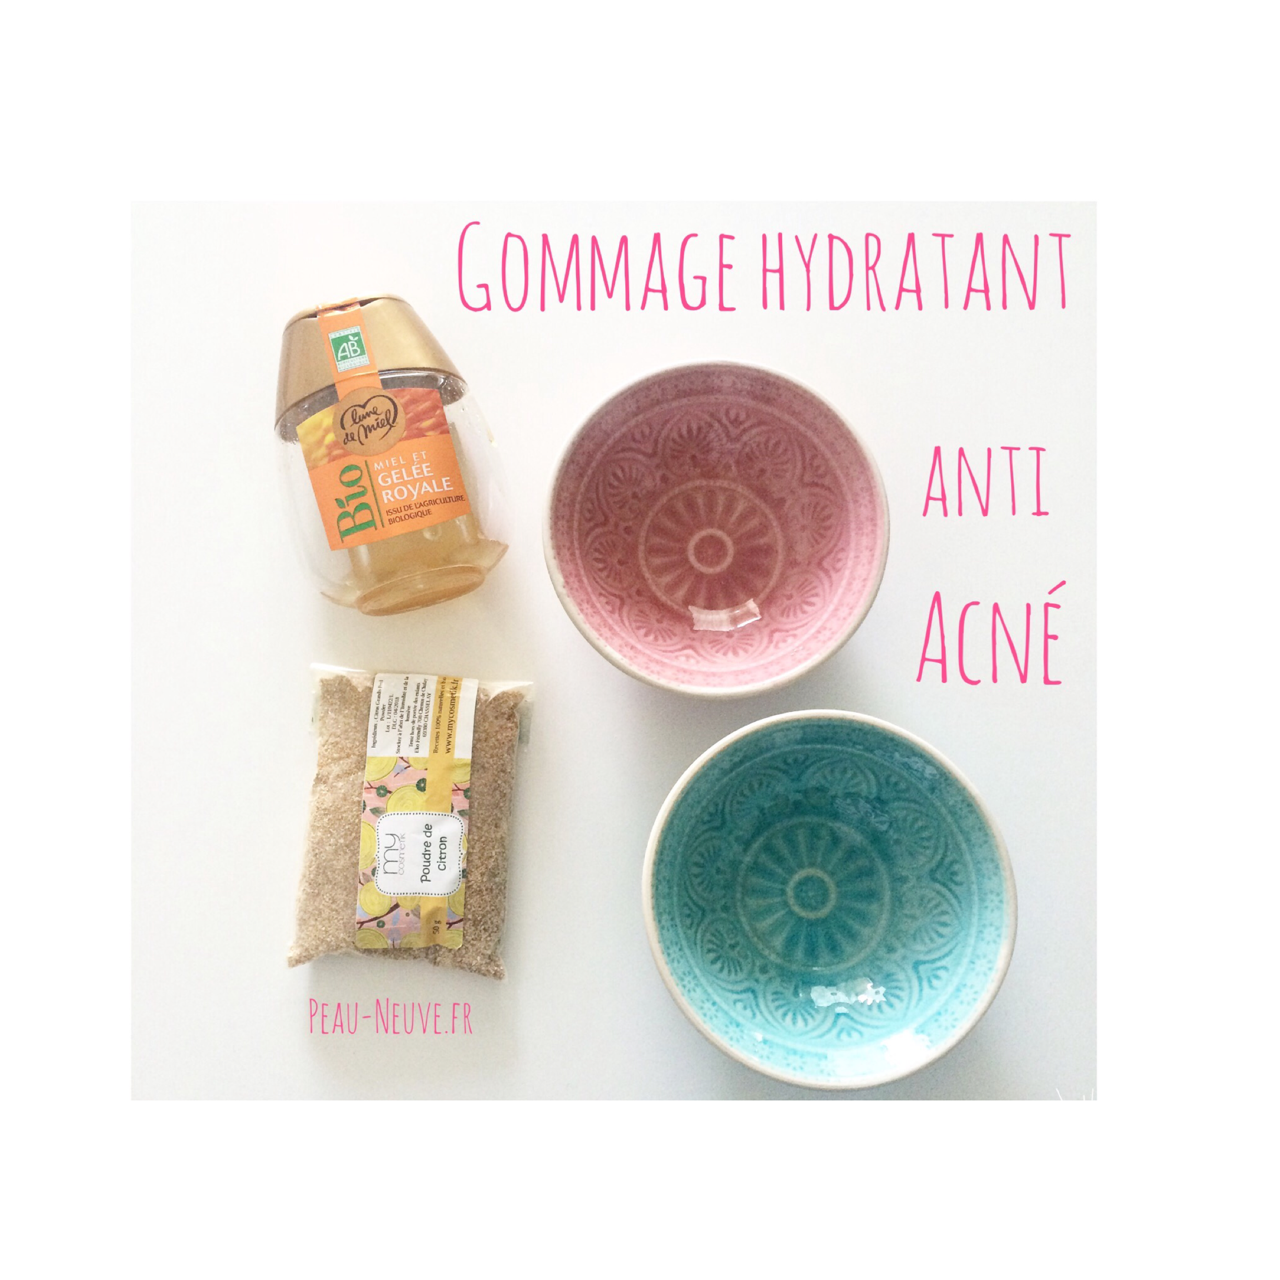 Gommage hydratant anti-acné